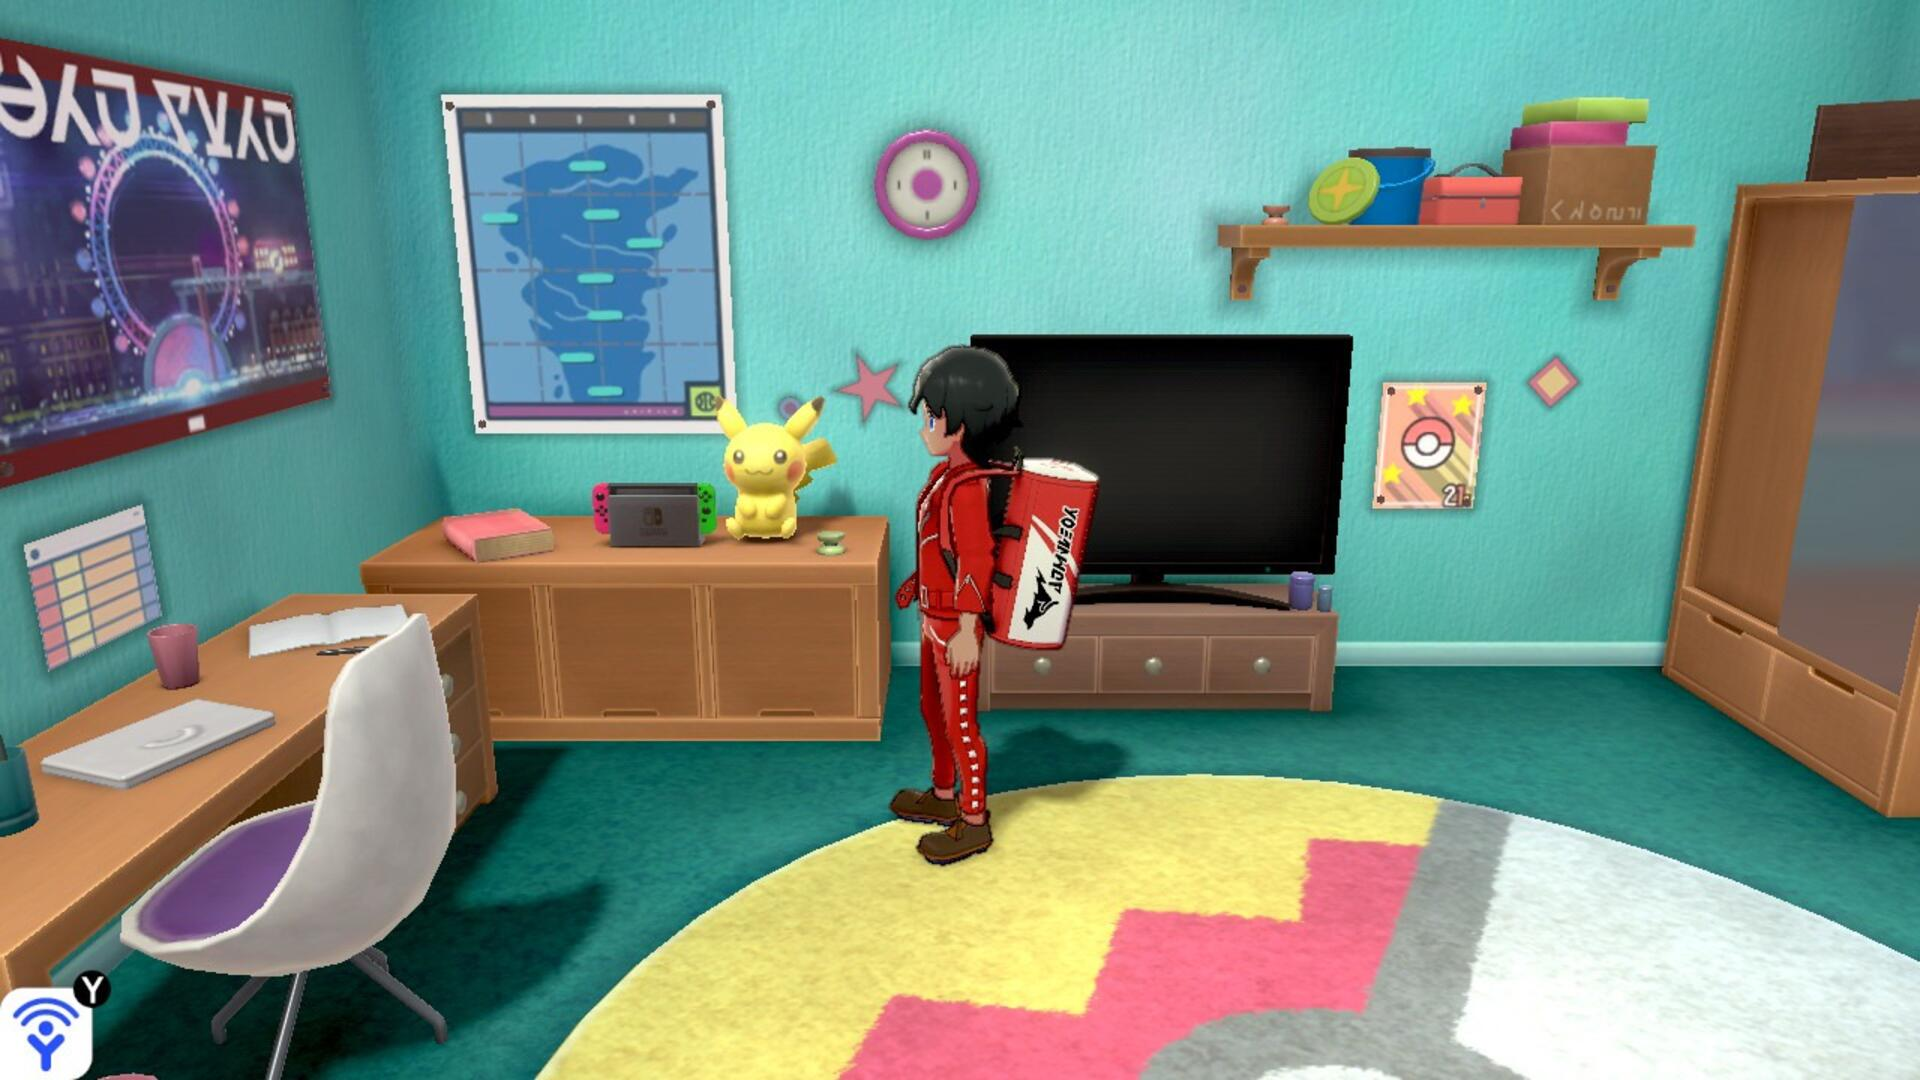 You Should Look Closely at the Switch in Pokemon Sword and Shield's First Room